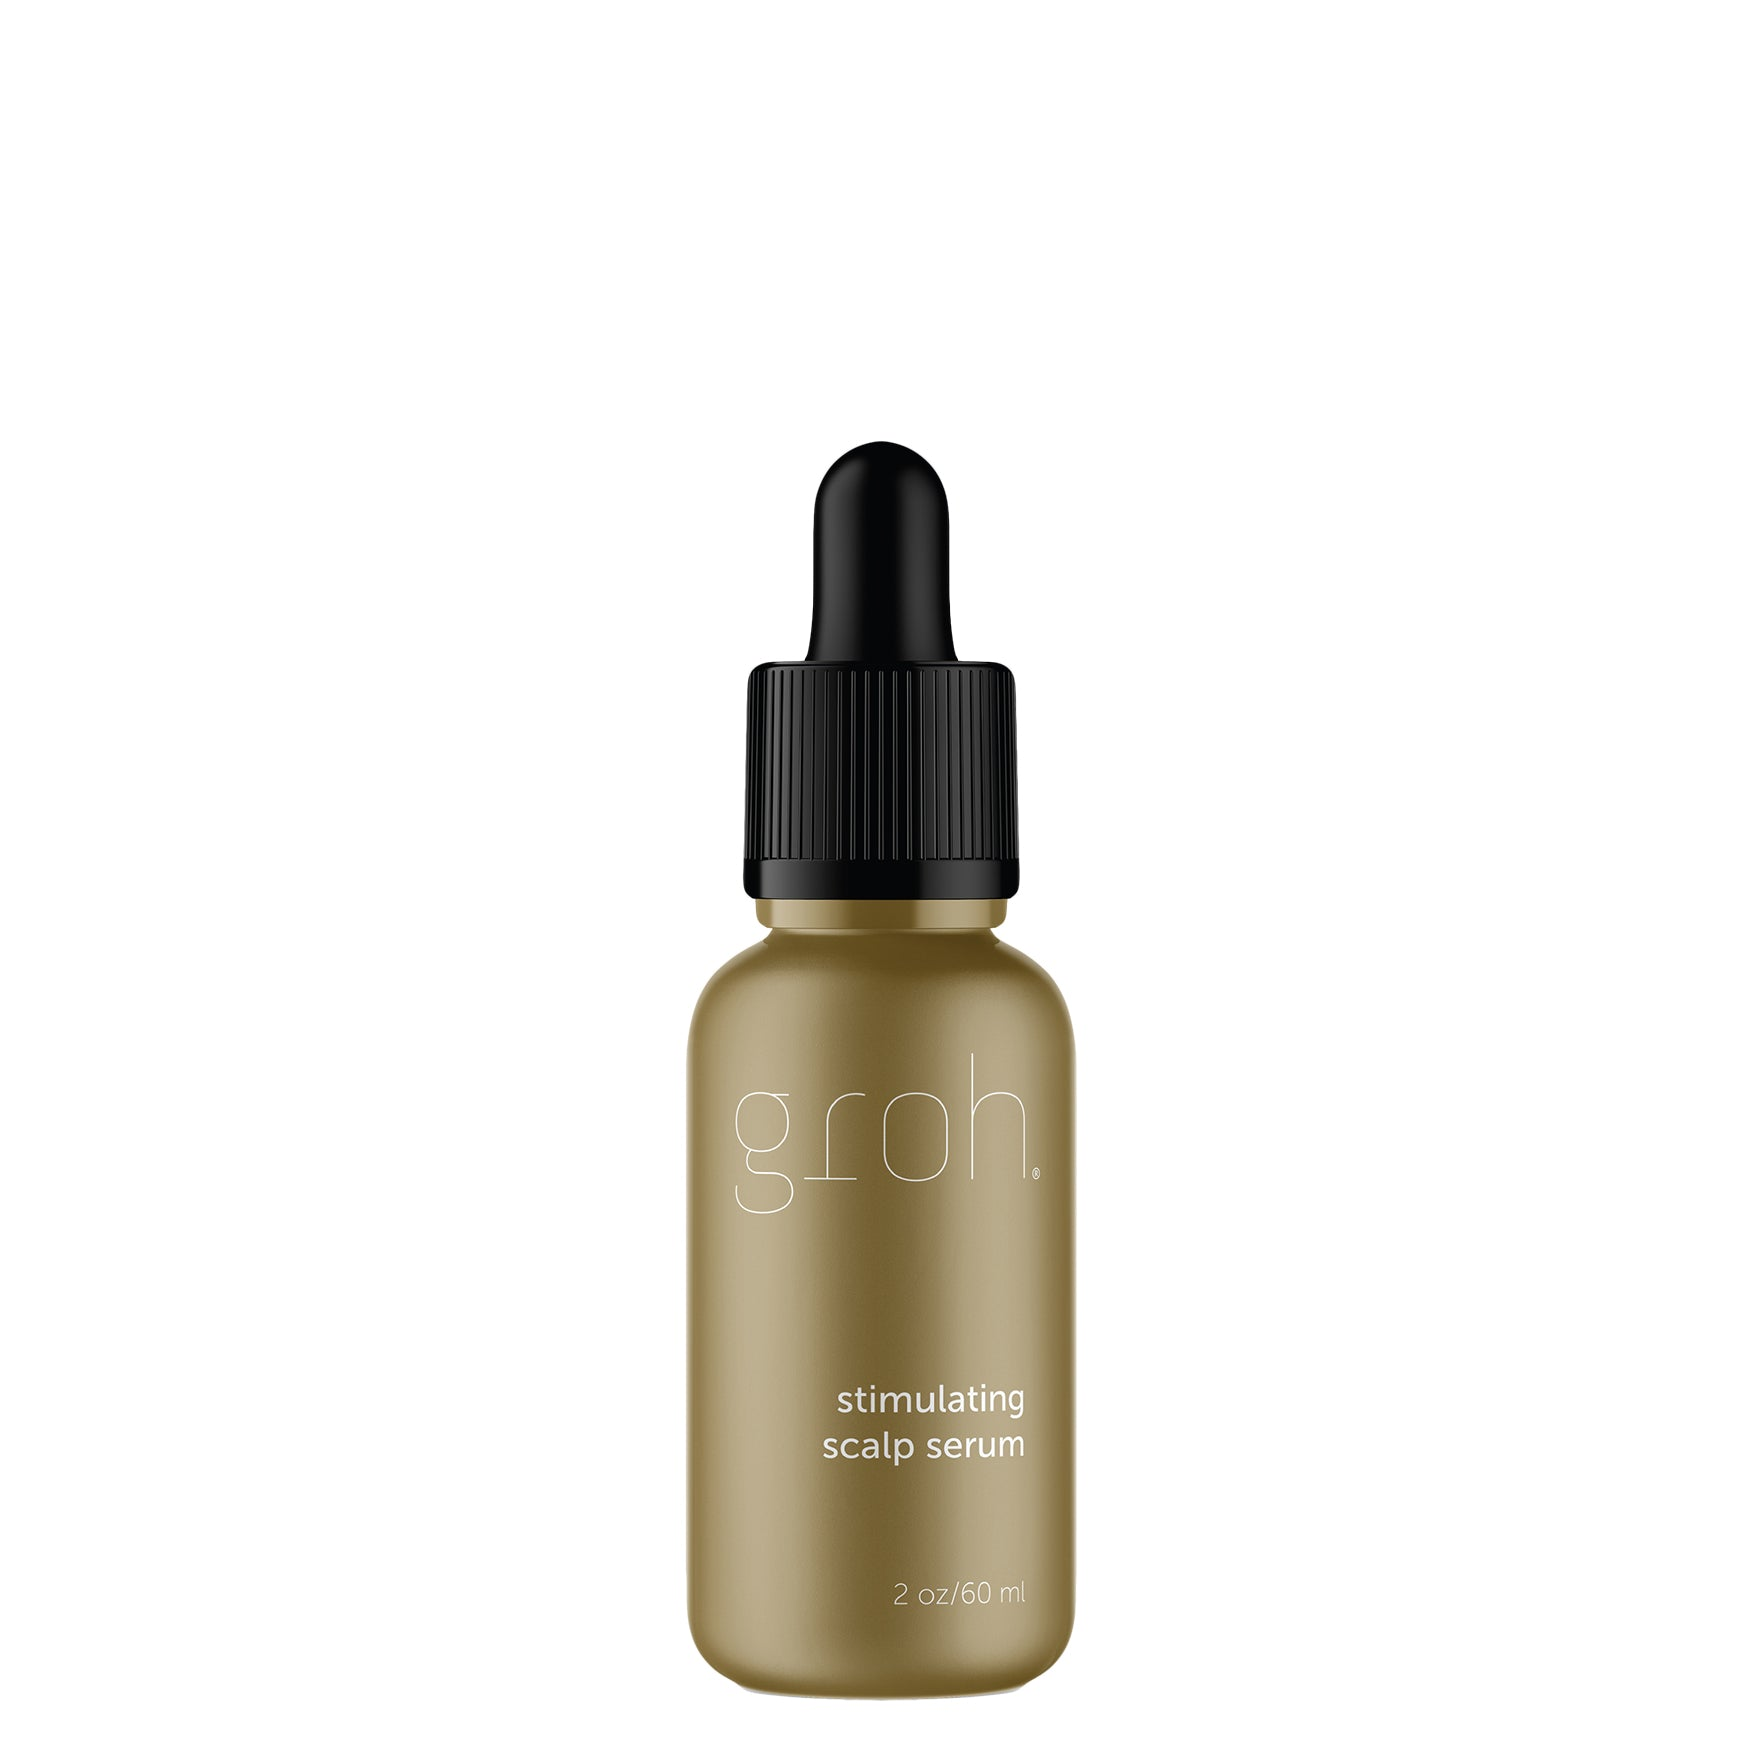 Stimulating Scalp Serum